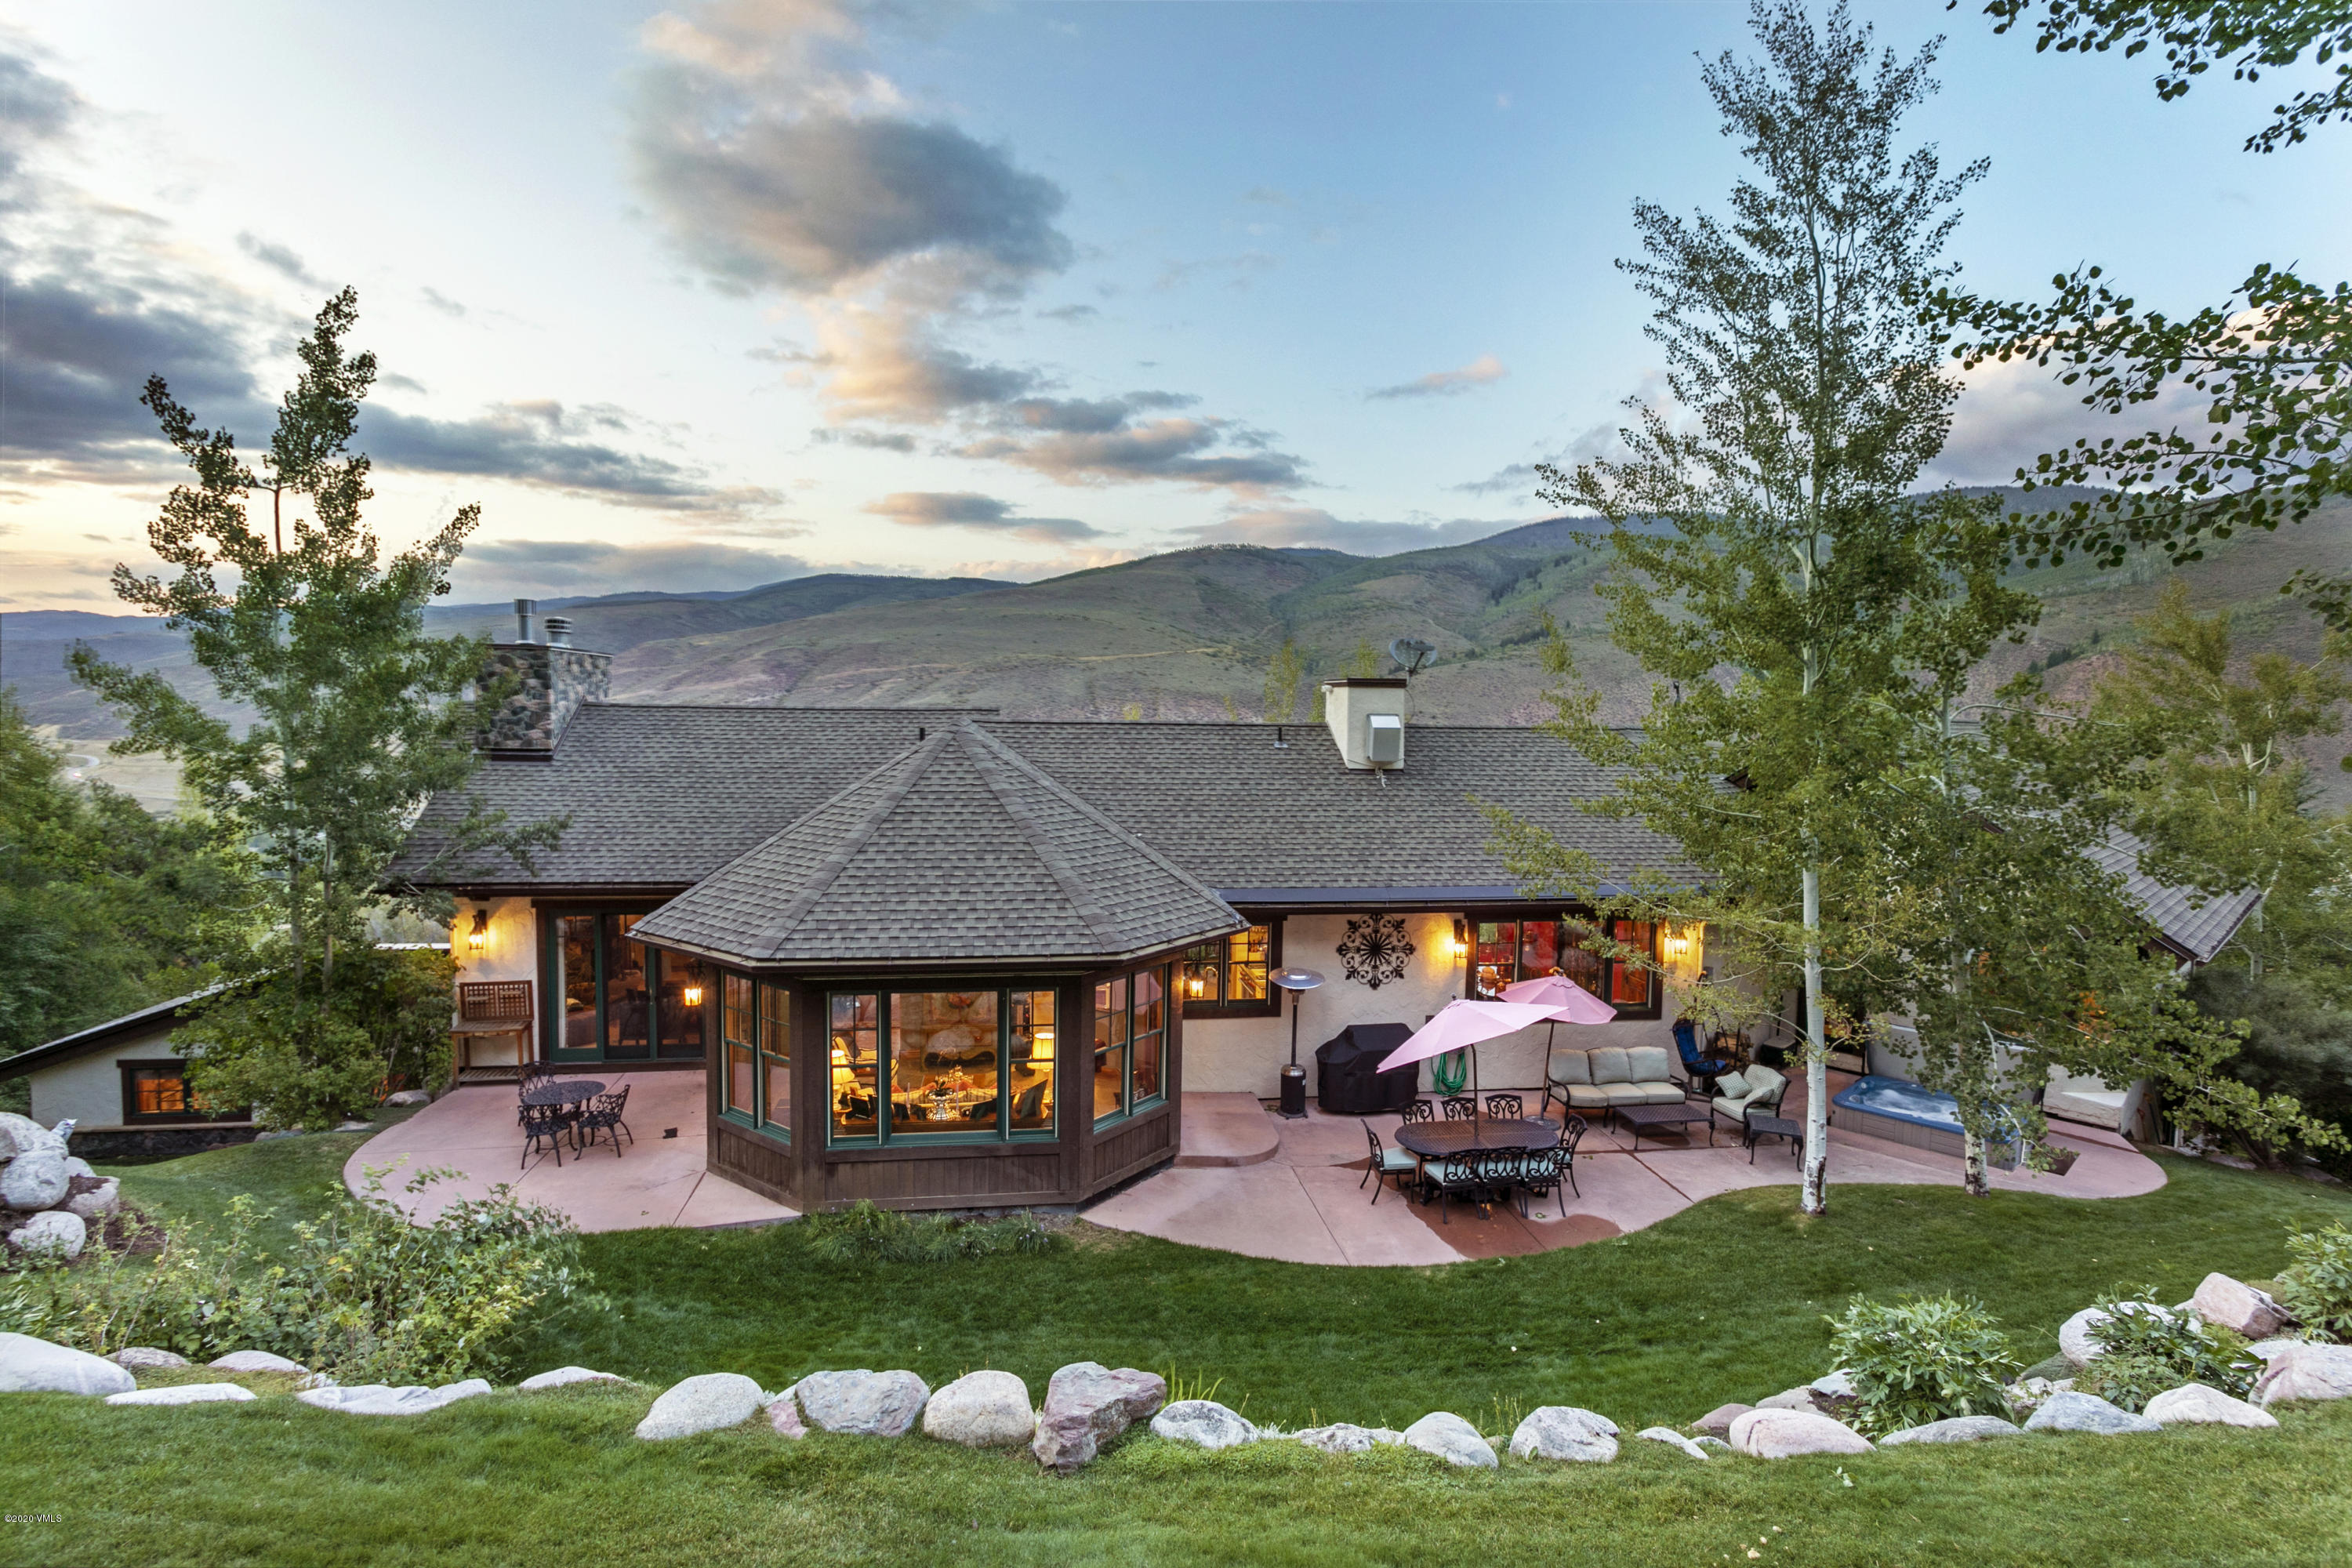 Rarely available, and offered for the first time, this custom-built single-family home at the top of Eagle-Vail is the epitome of luxurious mountain living. Elegance of design greets throughout this meticulously maintained home - from the hand-hewn knotty alder wood floors, Copper bar top, 6-inch Alder baseboard, to the beautifully landscaped outdoor areas. Extraordinary for entertaining, this home has a welcoming open concept main level, wet bar, home theater, elevator, and separate dining area. Relish in the warmth of the Grand room with high-vaulted ceilings, wood-burning fireplace with gas assist, and expansive views across Valley. A gourmet kitchen with Wolf French top range, pot filler, Sub-Zero refrigerator, two Asko dishwashers will make meals a pleasure-A local celebrity chef told owners that the kitchen is so well designed it is one of his top three favorite home kitchens ever. The Master bedroom suite offers tranquility away from the main areas of the home with stunning views. Enjoy sunset dinner on your walk-out deck, two walk-in closets, and a large master bathroom with soaking tub. Backing to National Forest and on a quiet road, the privacy of this home and abundance of nature and wildlife is second to none. An oversized 3-car garage, finished basement, and additional storage areas provide more than enough room for cars, toys, and all the gear your mountain lifestyle will desire. Unique to this home is a home office with two private offices, a common area with 3 workspaces, kitchen, and full bathroom - this could be a caretaker's suite or lock off. Snowmelt driveway, heated and lit front entrance steps, 700+ bottle wine cellar, drip and irrigation system, and brilliant sunsets - this is exceptional mountain living, all within 15 minutes of Vail Village and even less to Beaver Creek.